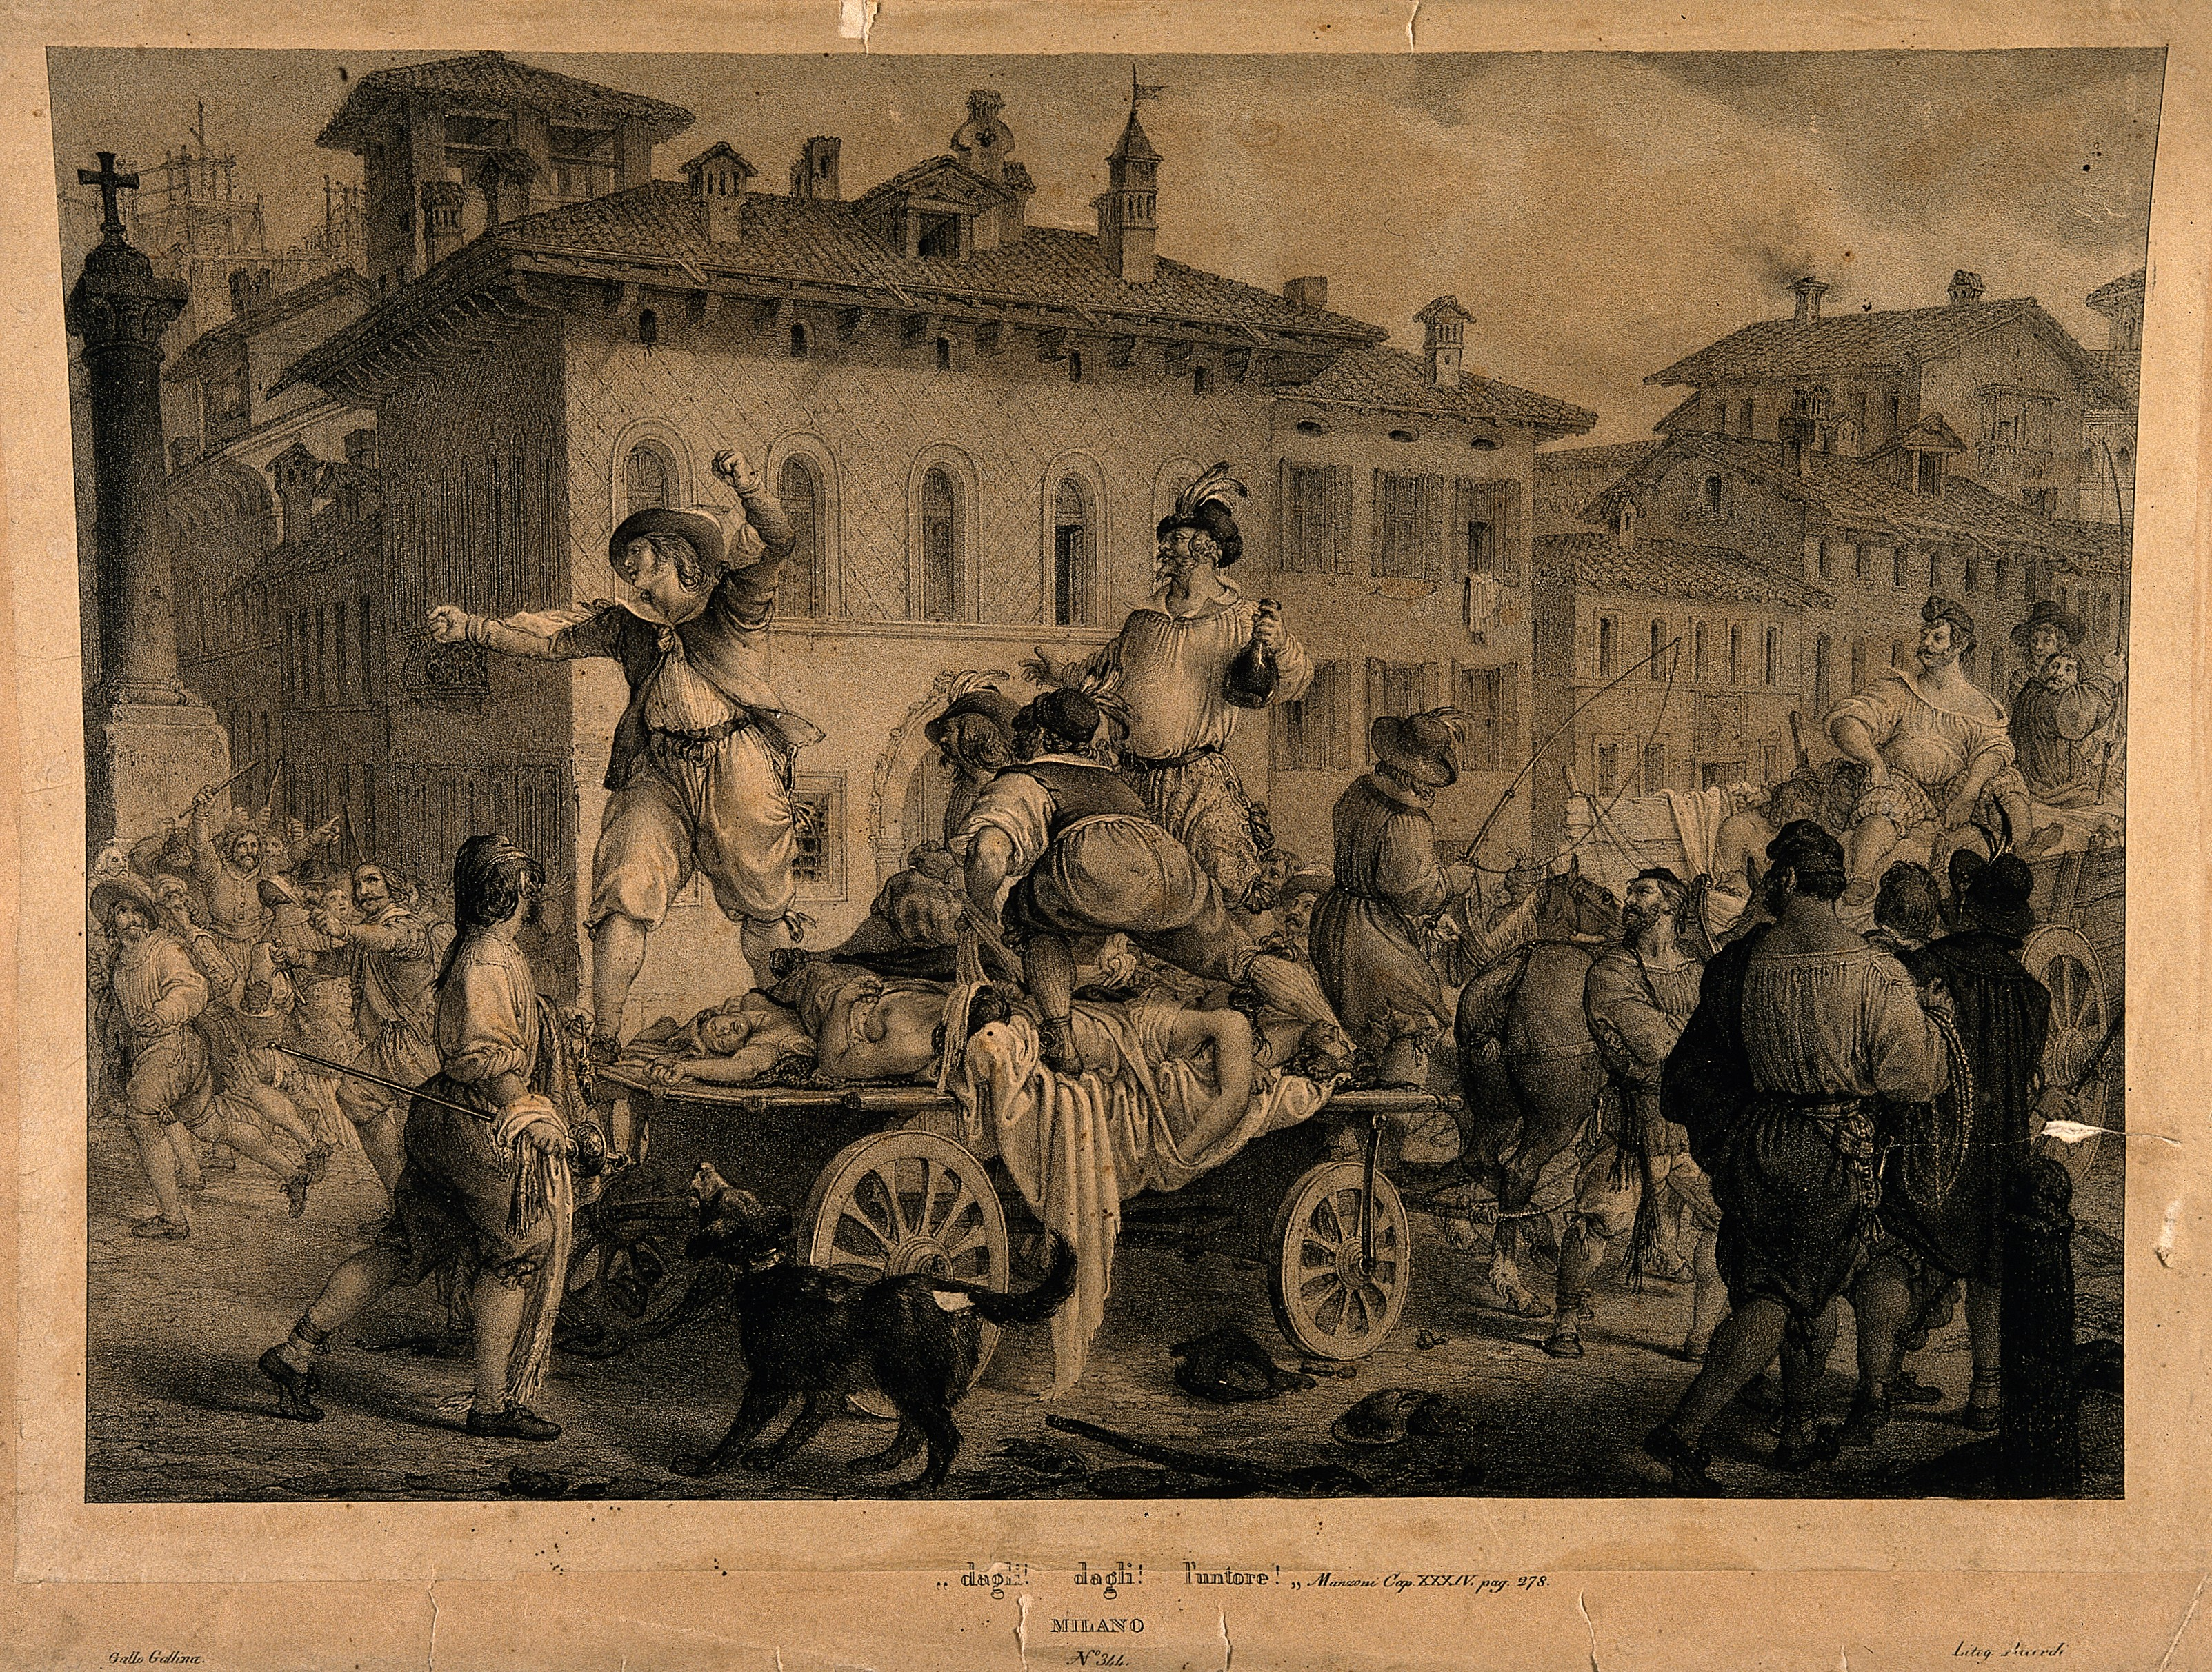 the history impact of the The impact of science on society one day everybody would have his own individual form of personal transportation, laughed at the idea of the metropolis at a standstill.